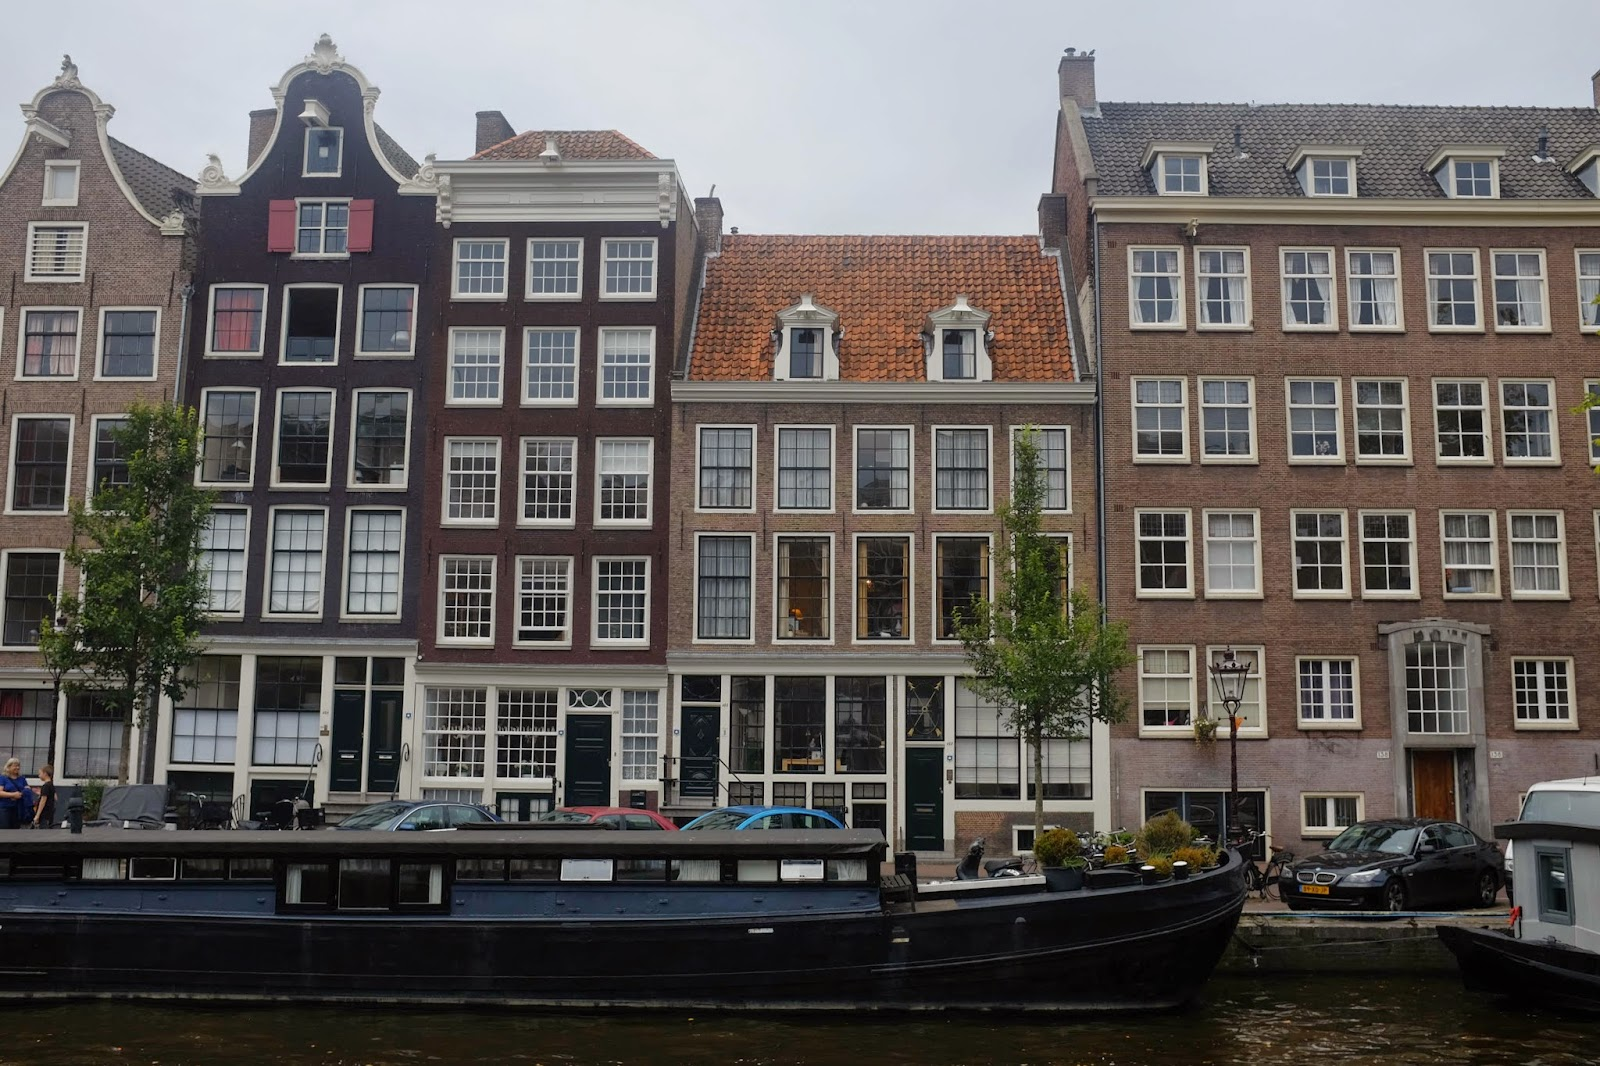 Canals of Amsterdam house architecture